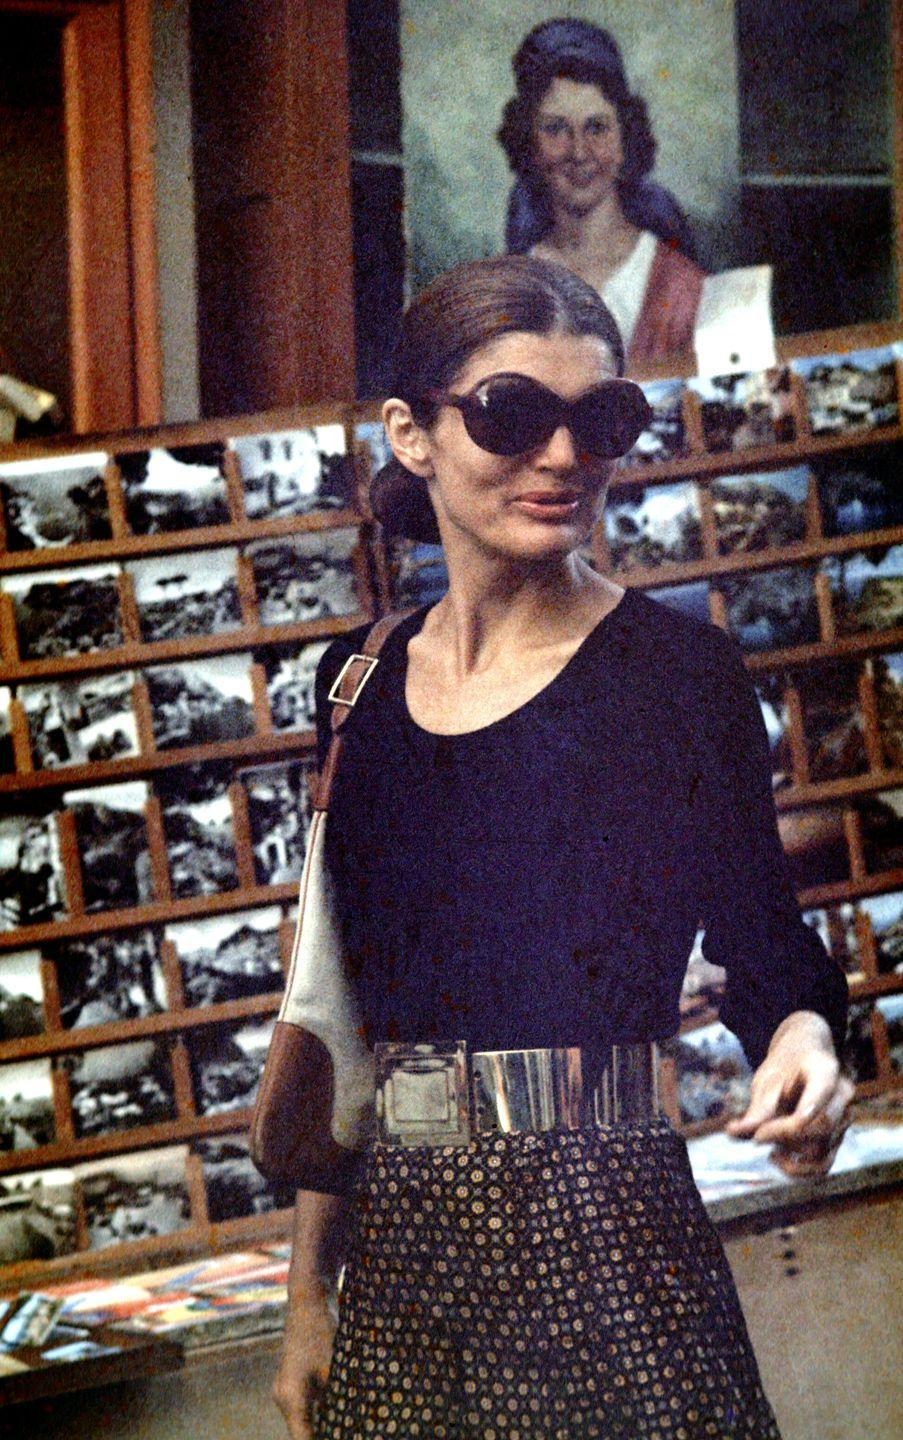 <p>Jackie next-levels her Italian vacation by channeling the style of Milan while shopping in Capri. Here, a chic black top, oversize metal belt, and patterned pants come together for a polished ensemble. <br></p>